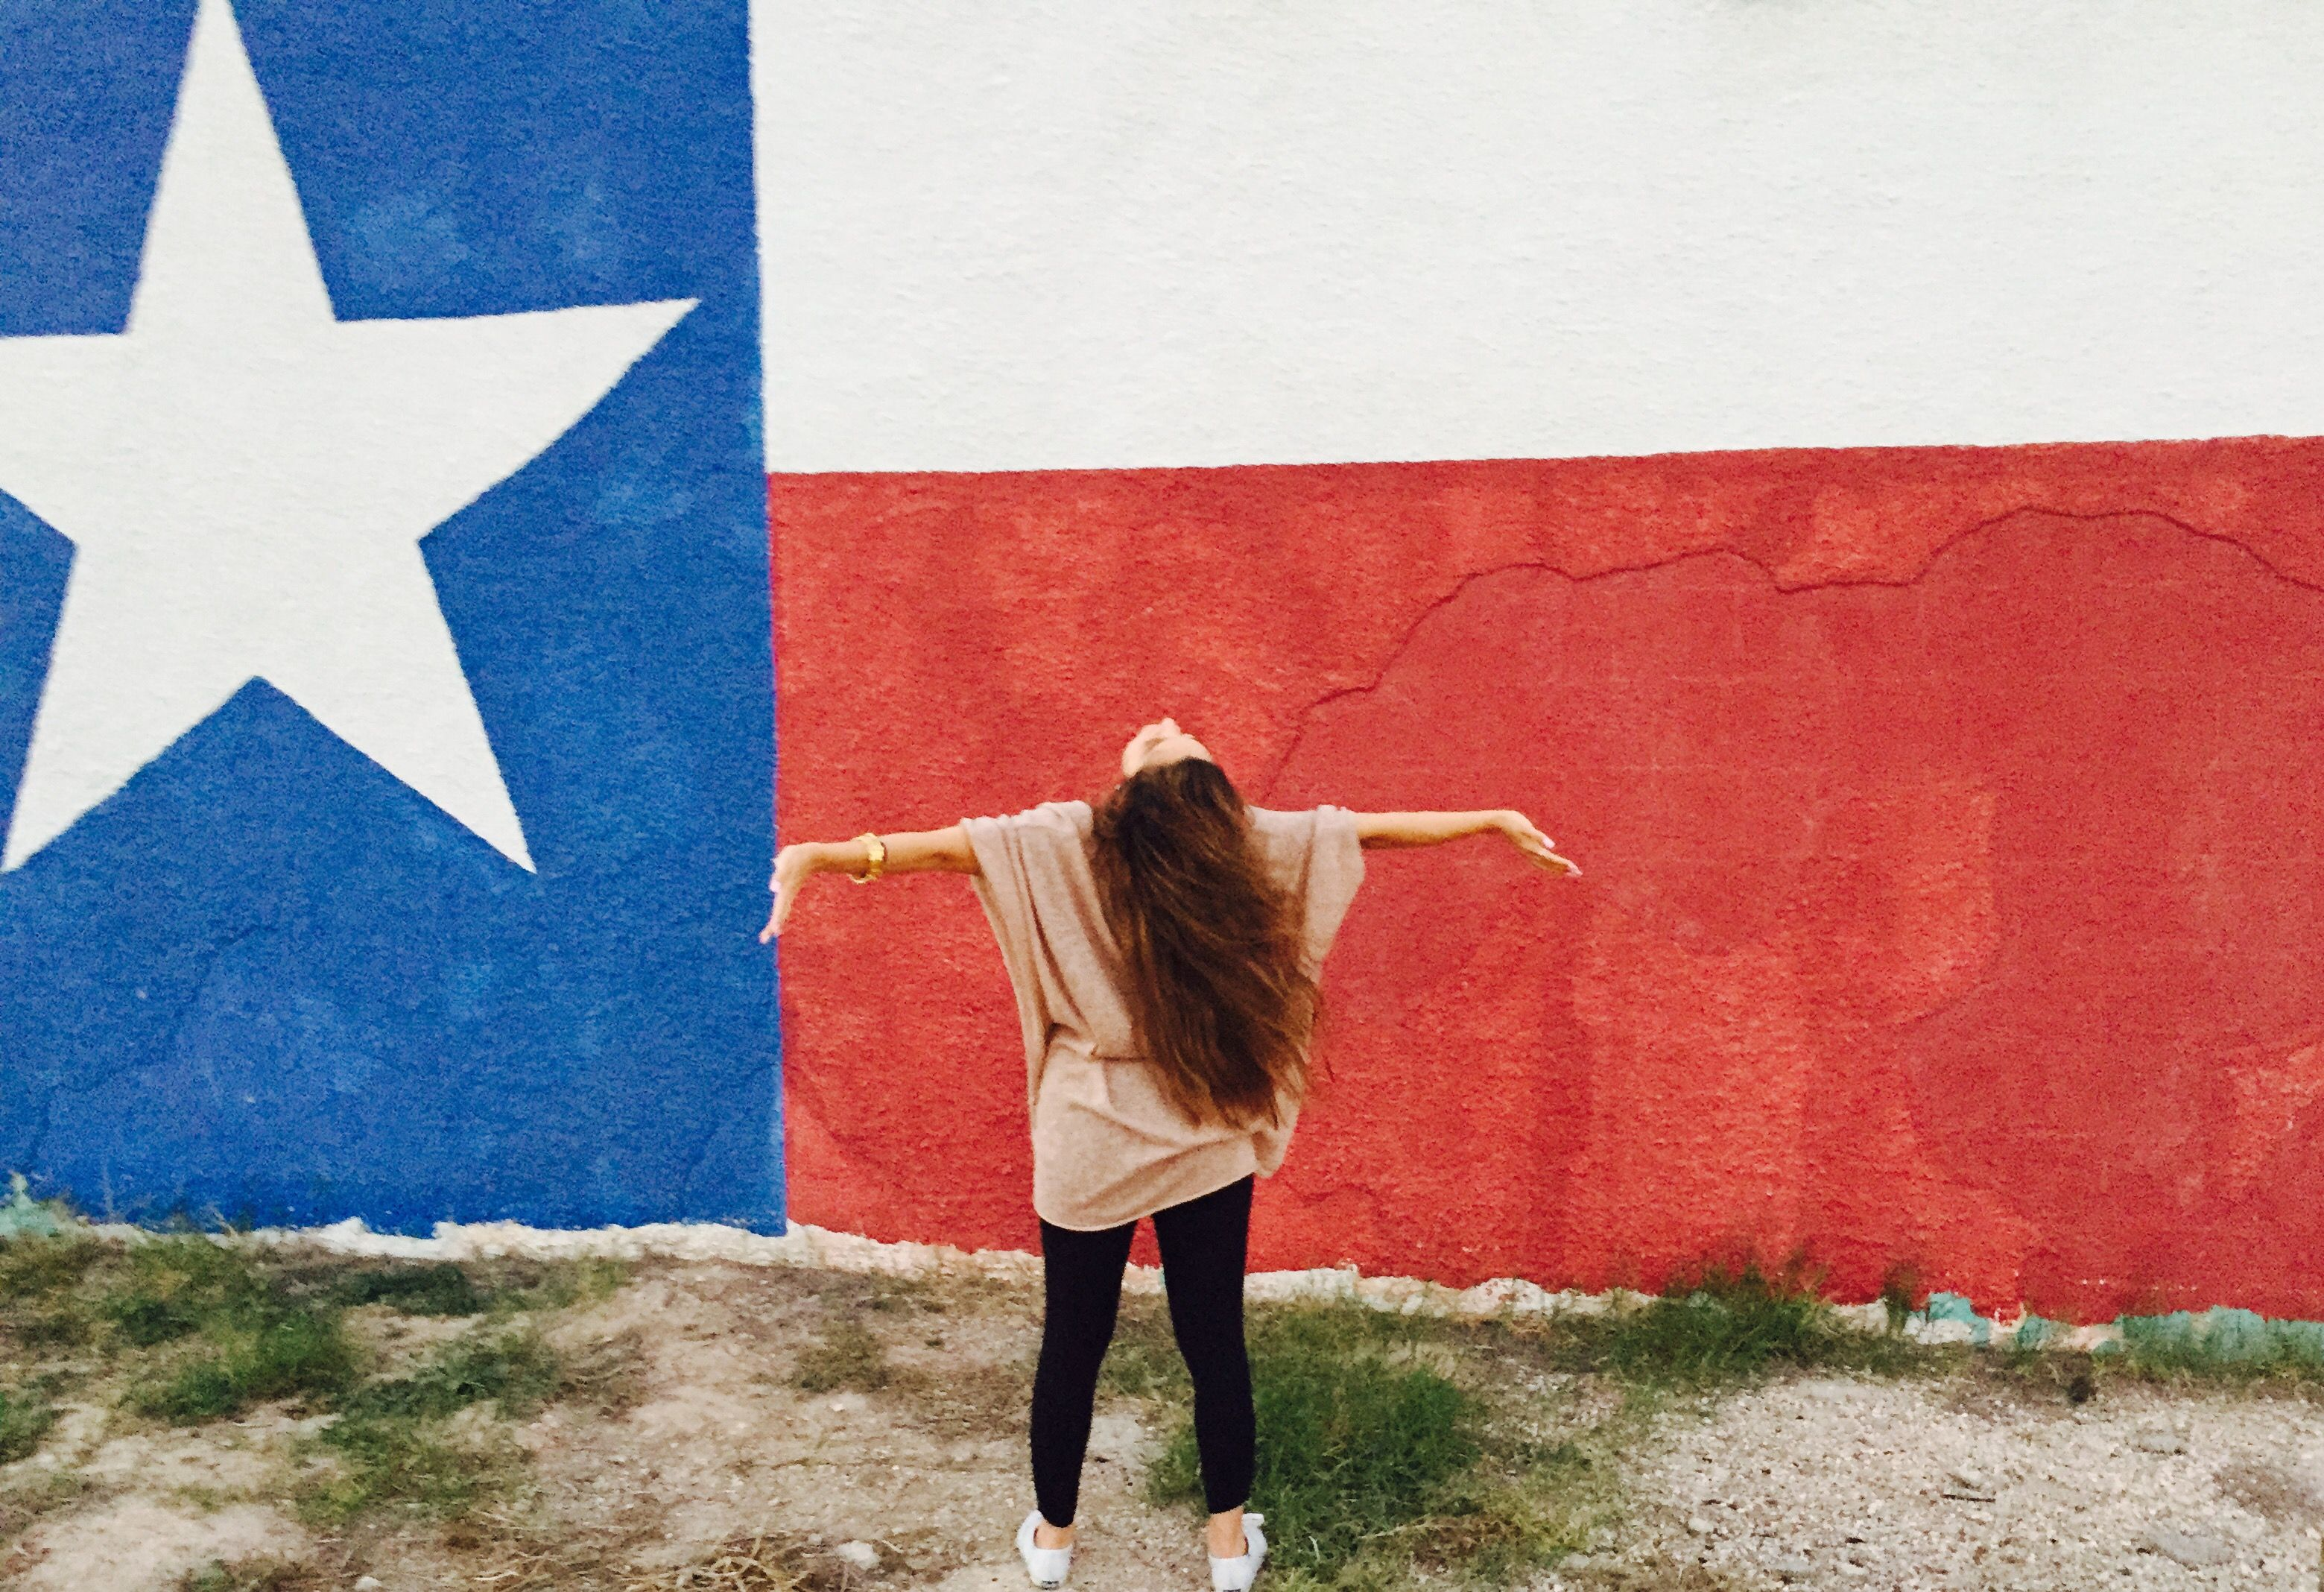 Going to El Paso, Texas. Painted walls are my favorite. - BrendaOffDuty